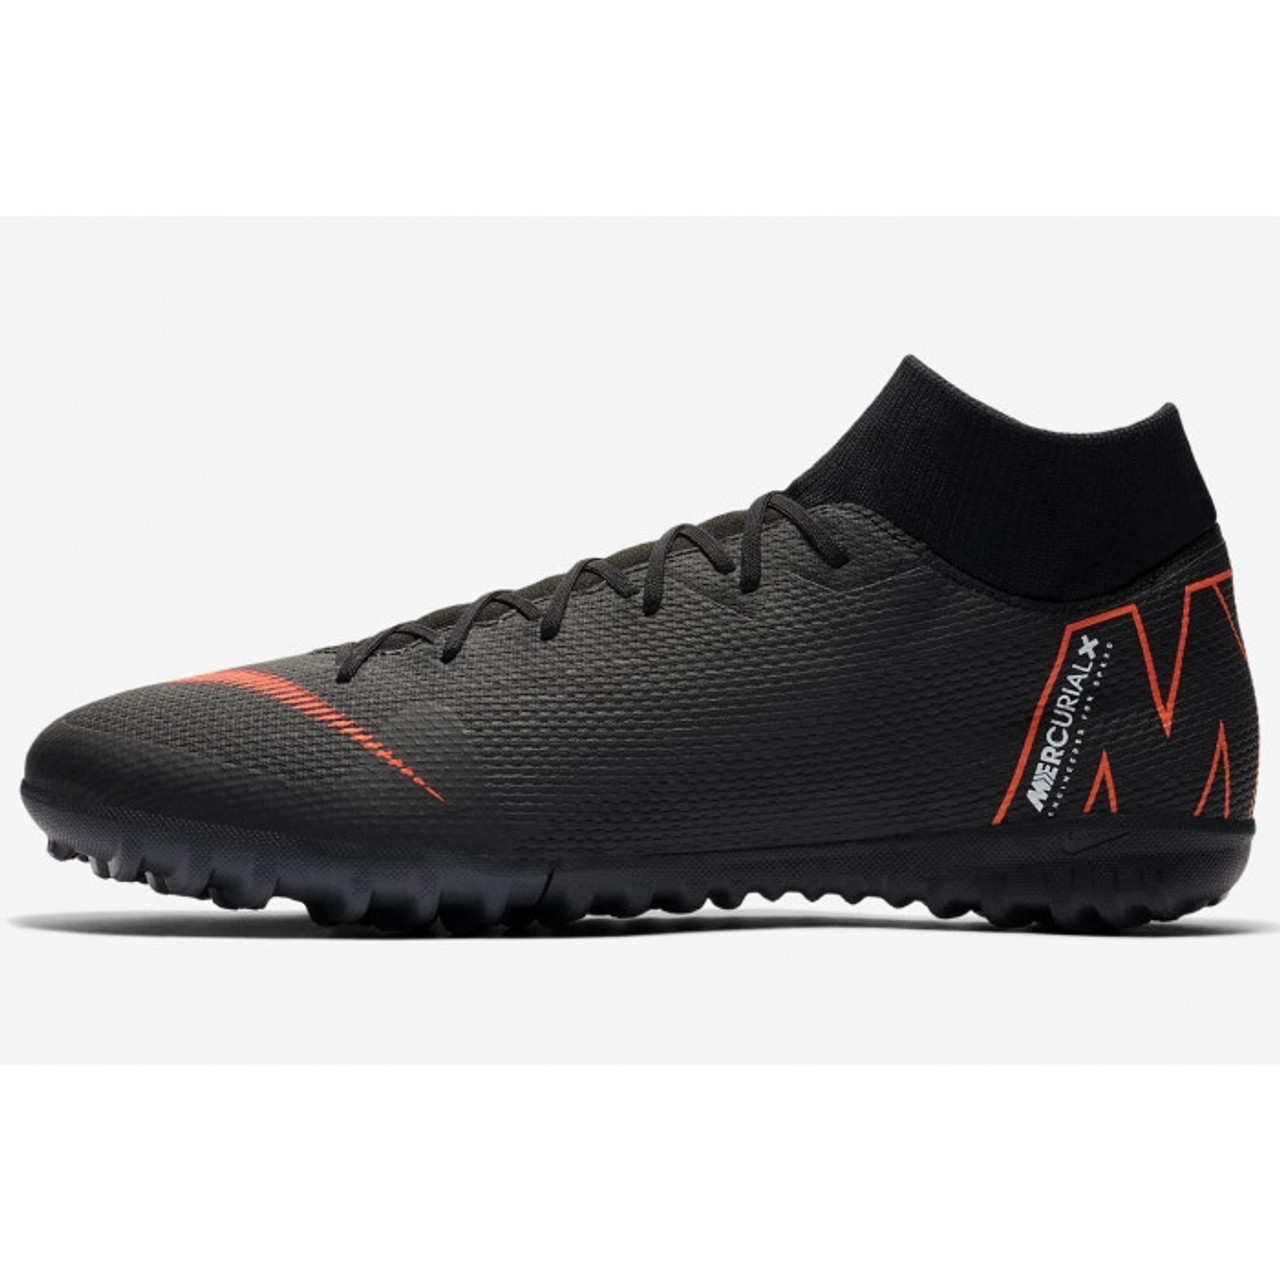 hot sale online aff5c 9a55c NIKE SUPERFLYX 6 ACADEMY TF Black